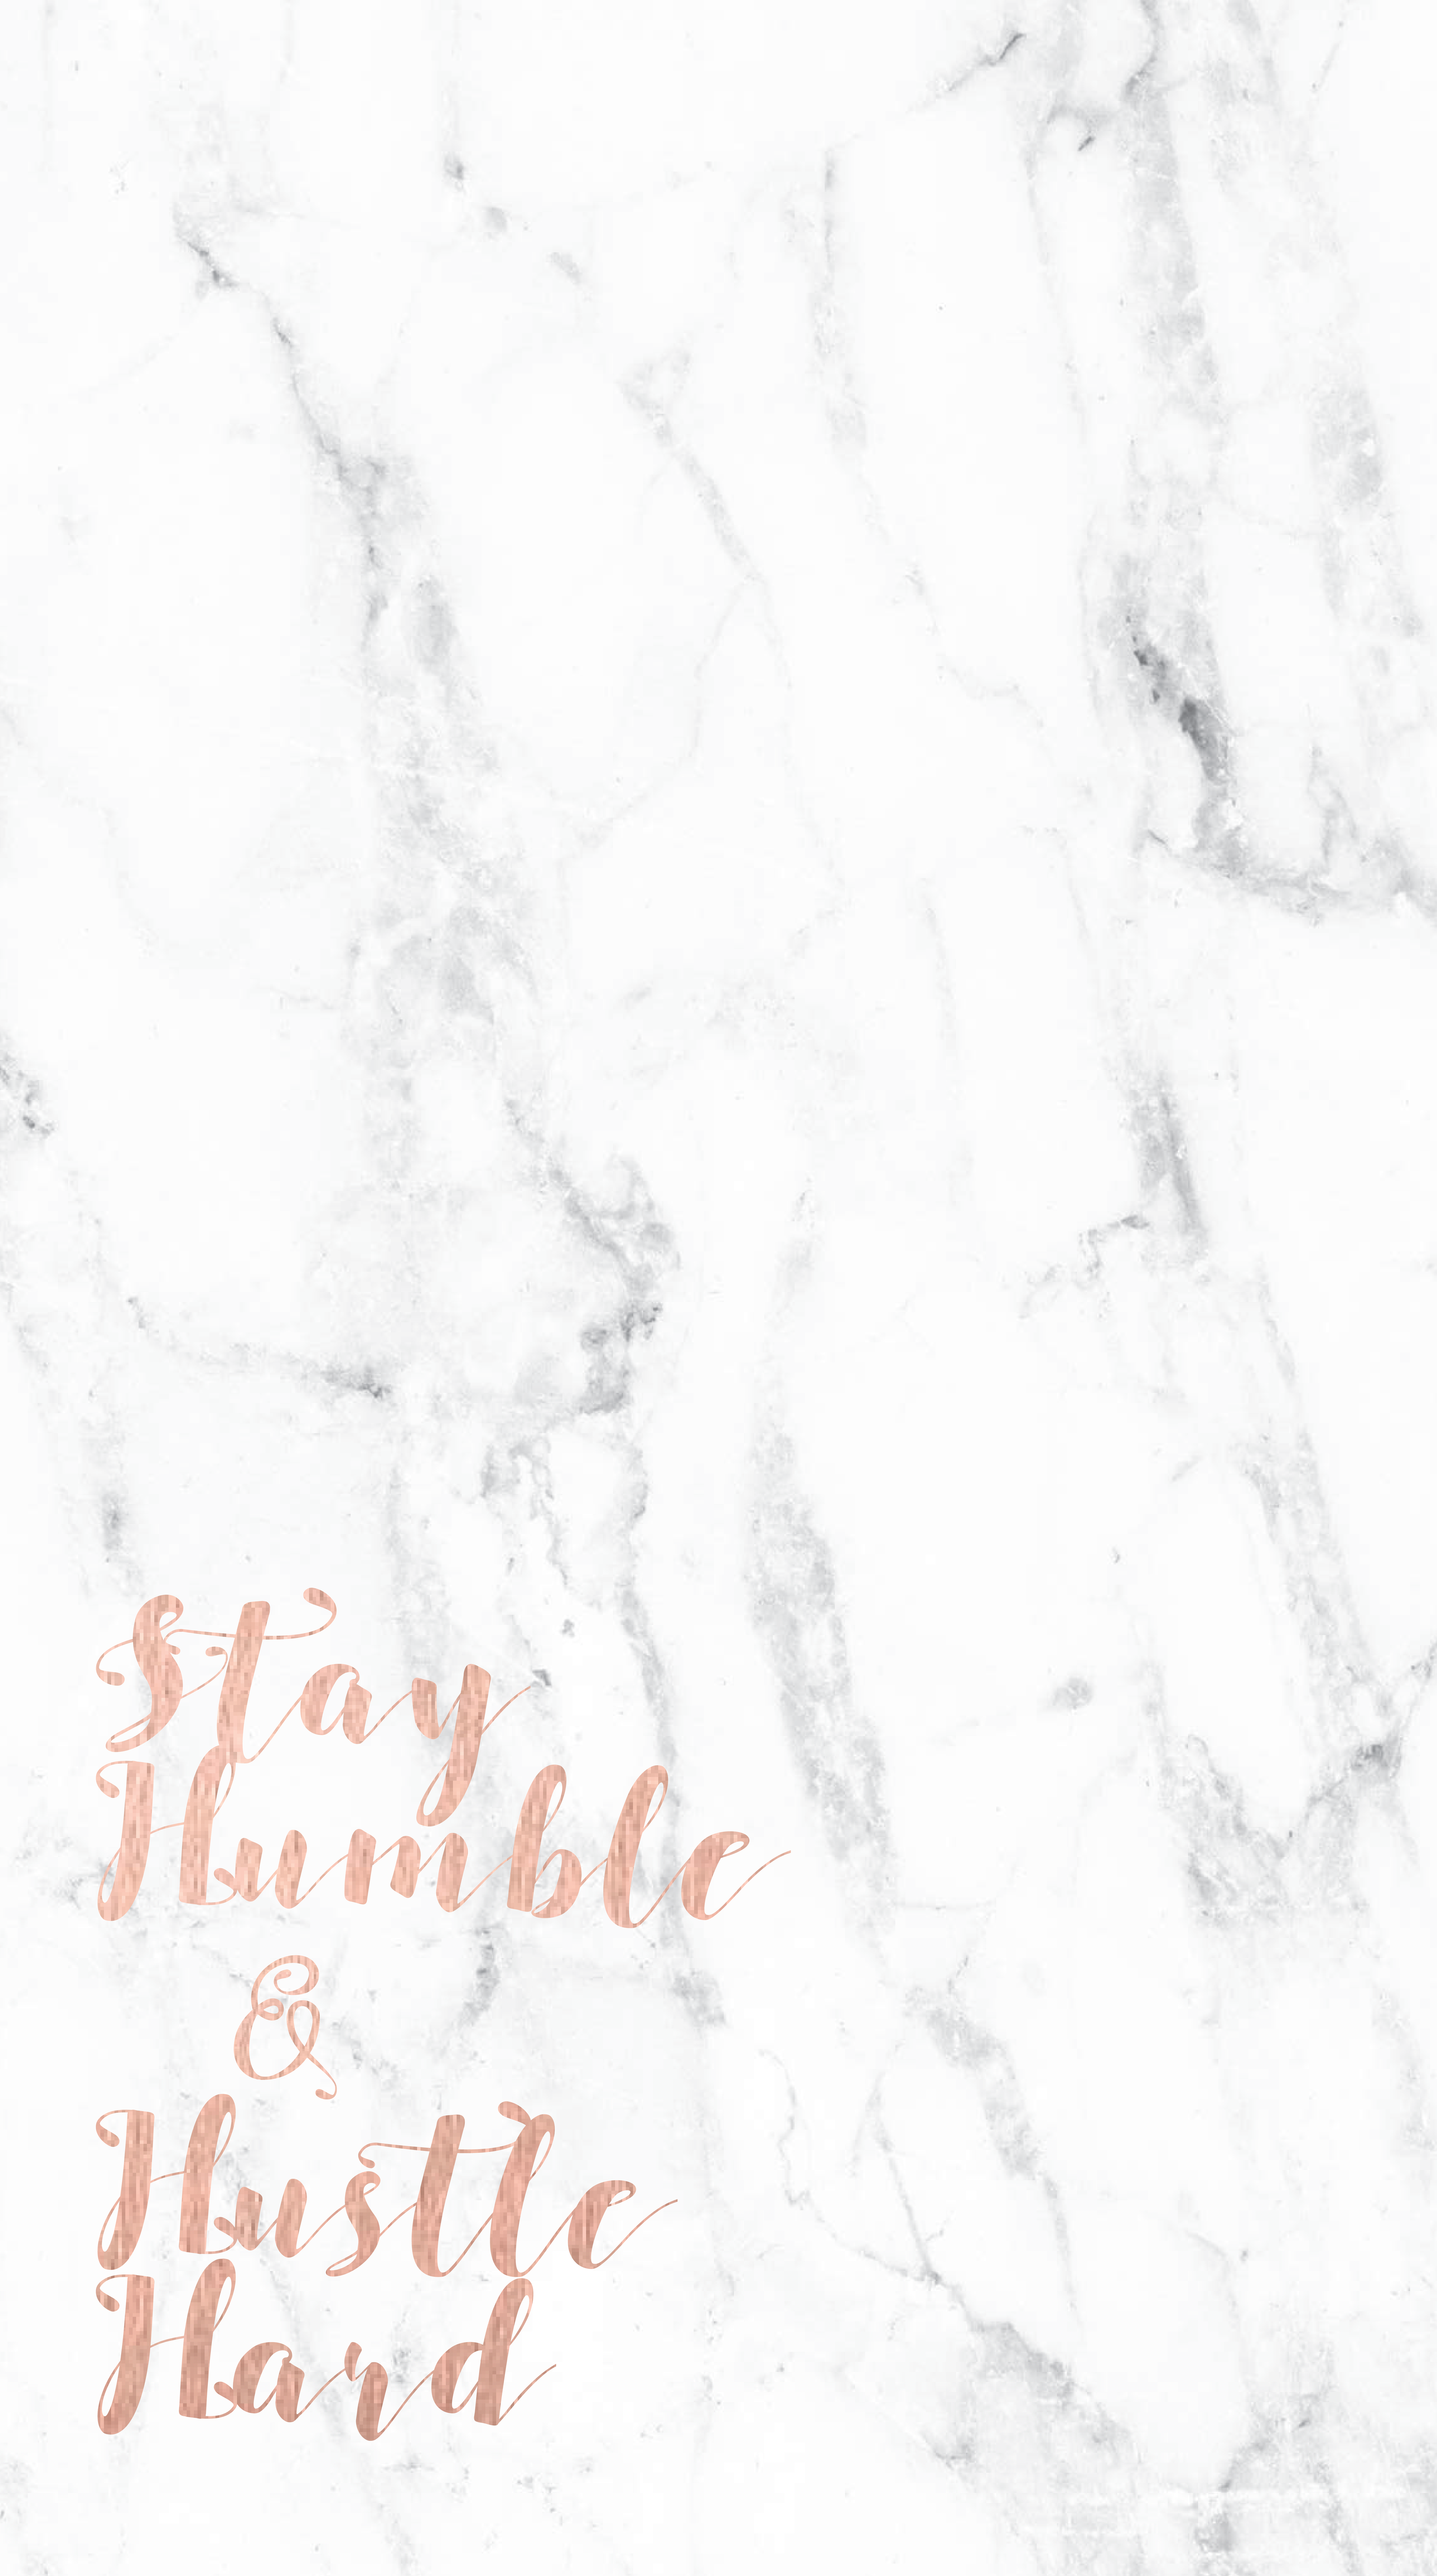 Free White Marble And Rose Gold Phone Lock Screen Stay Humble Hustle Hard